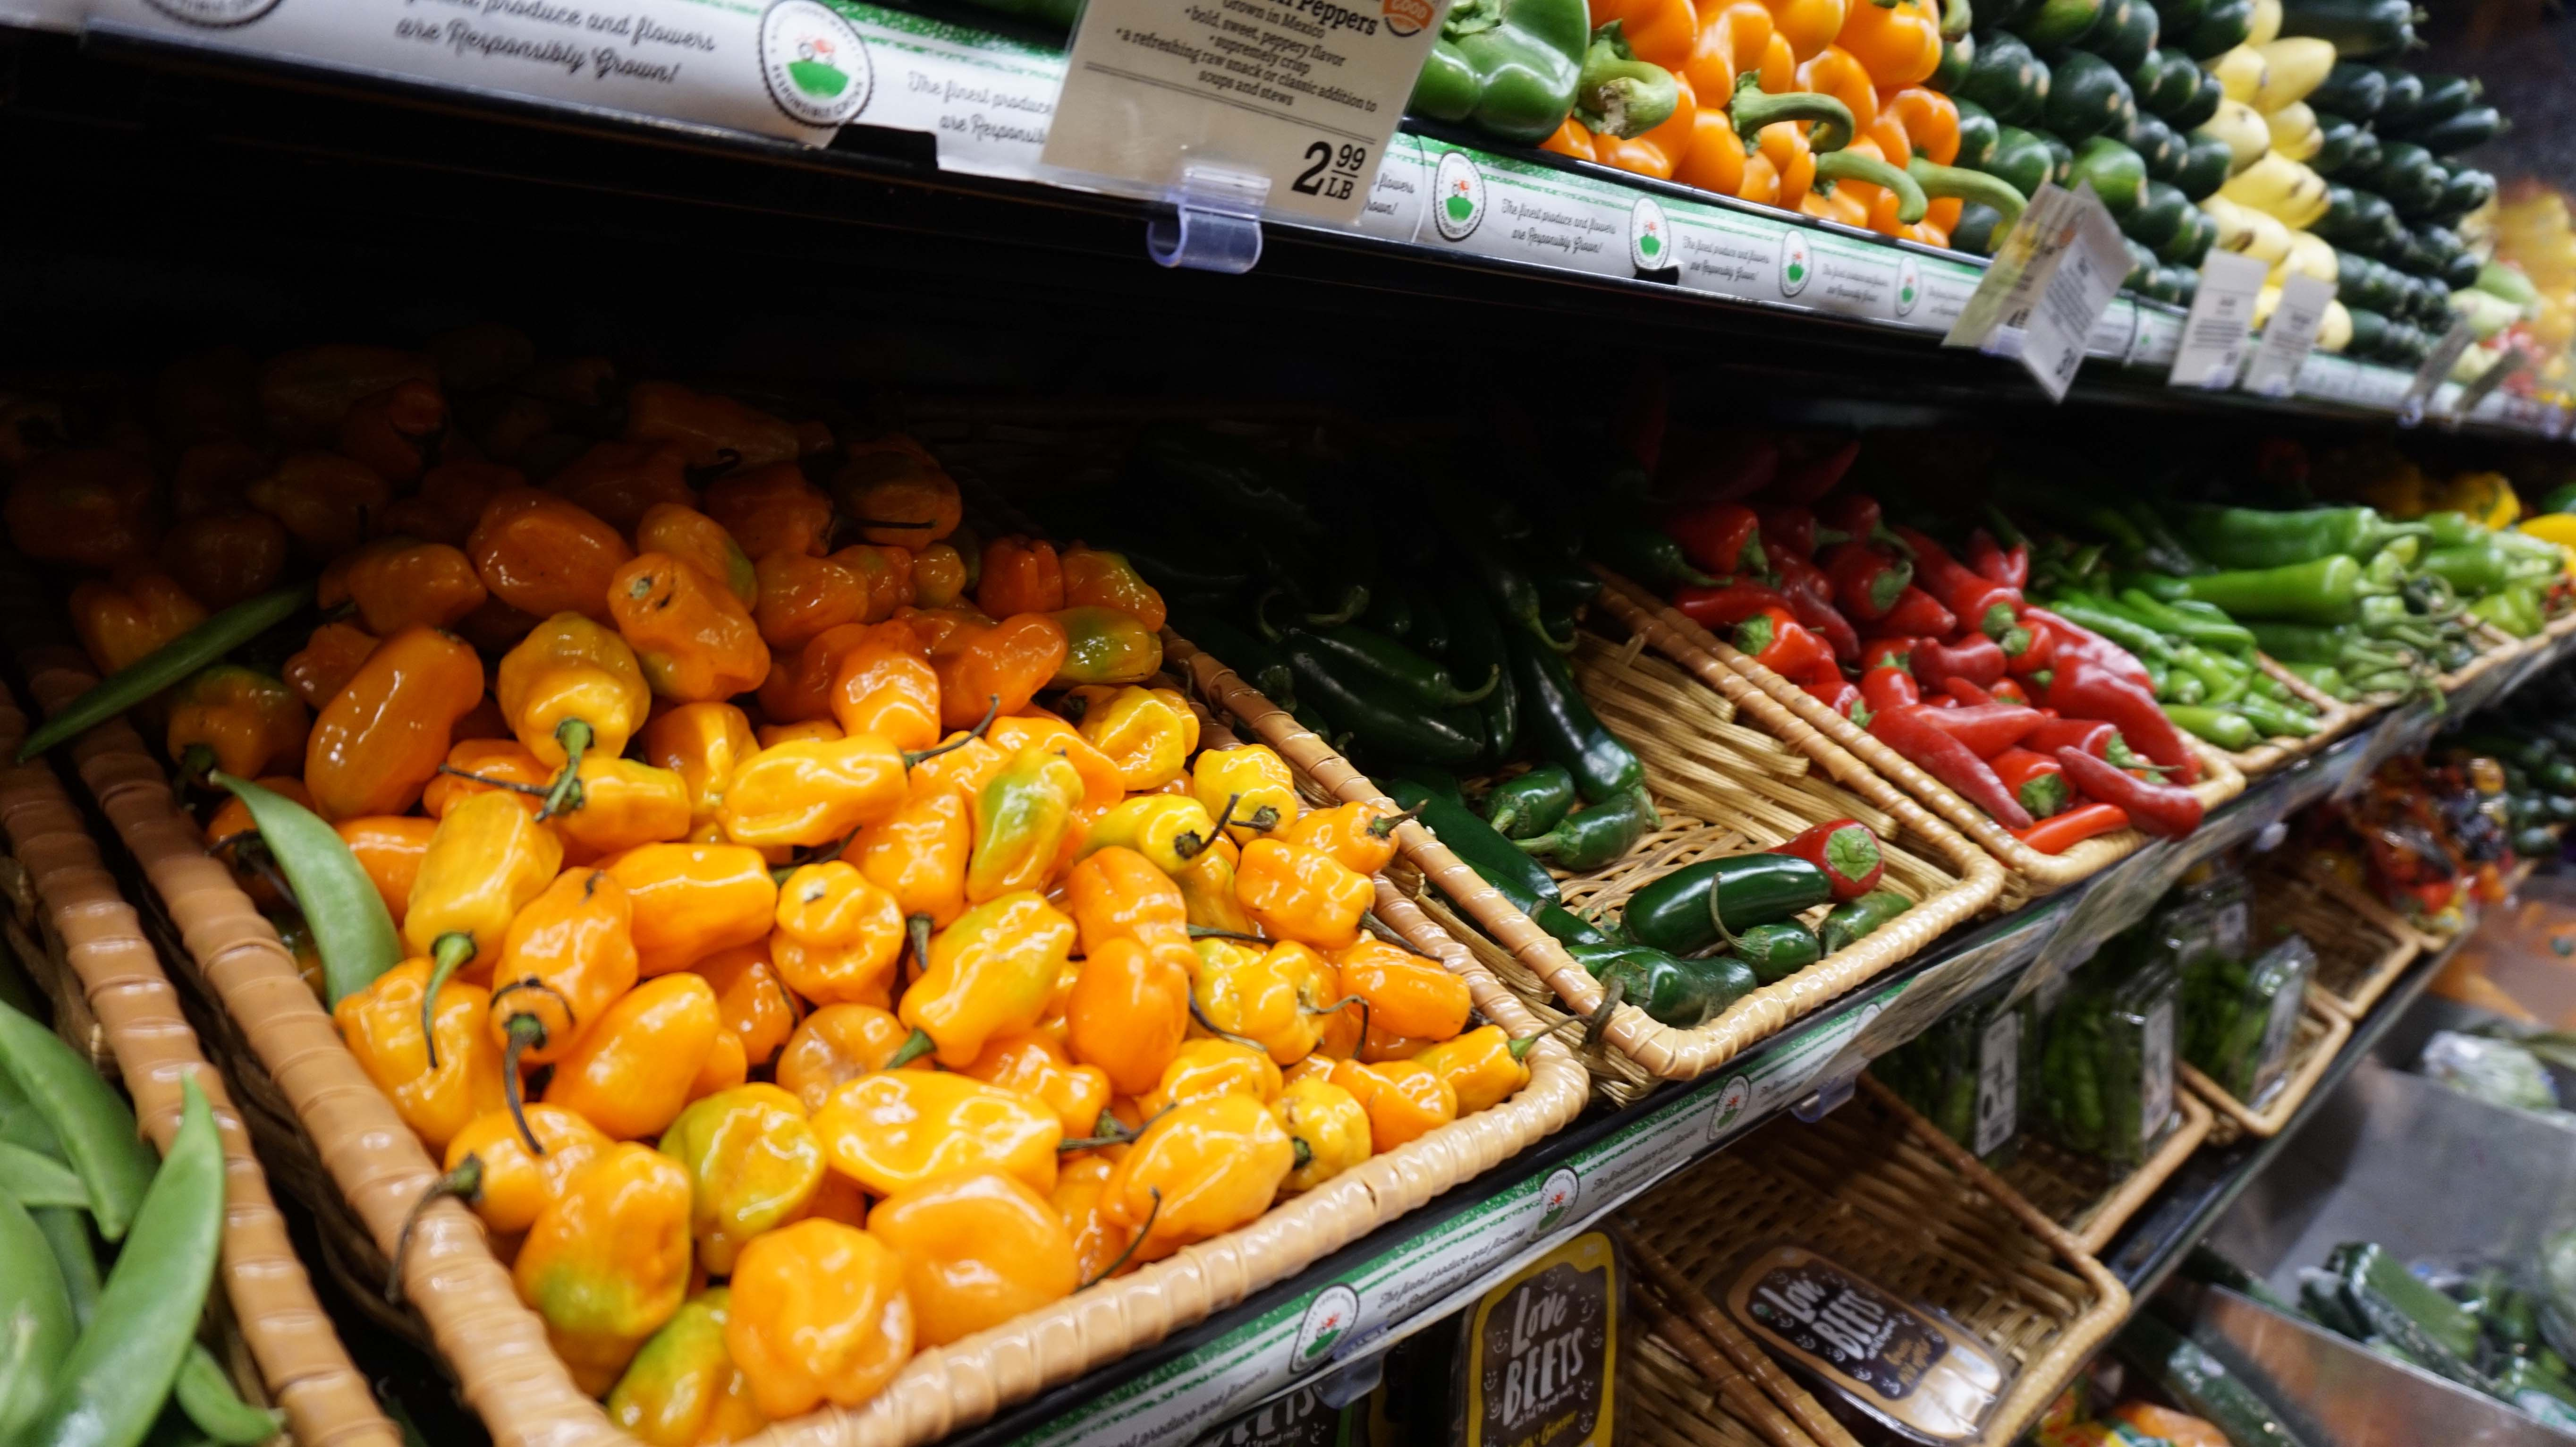 Whole Foods peppers